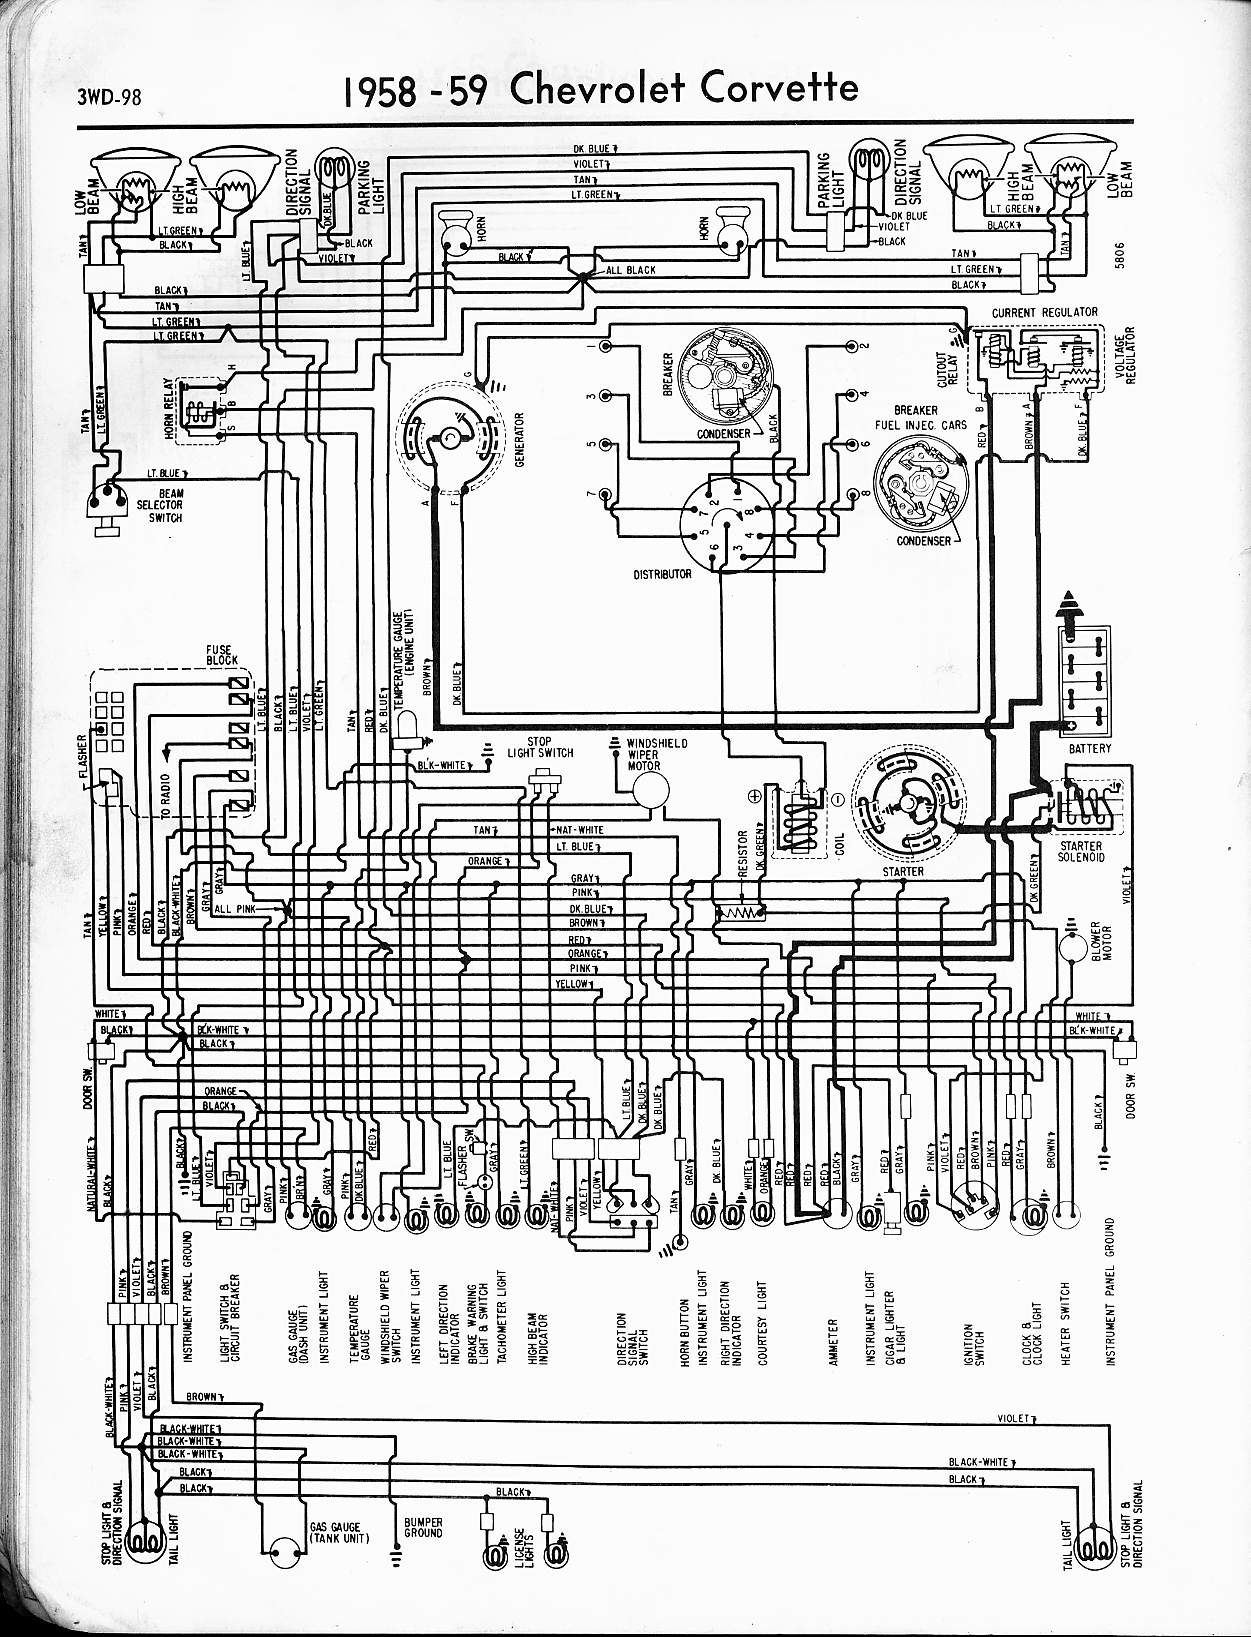 MWireChev58_3WD 098 100 [ car ignition wiring diagram ] affordable nice 1968 1957 chevrolet wiring diagram at gsmx.co